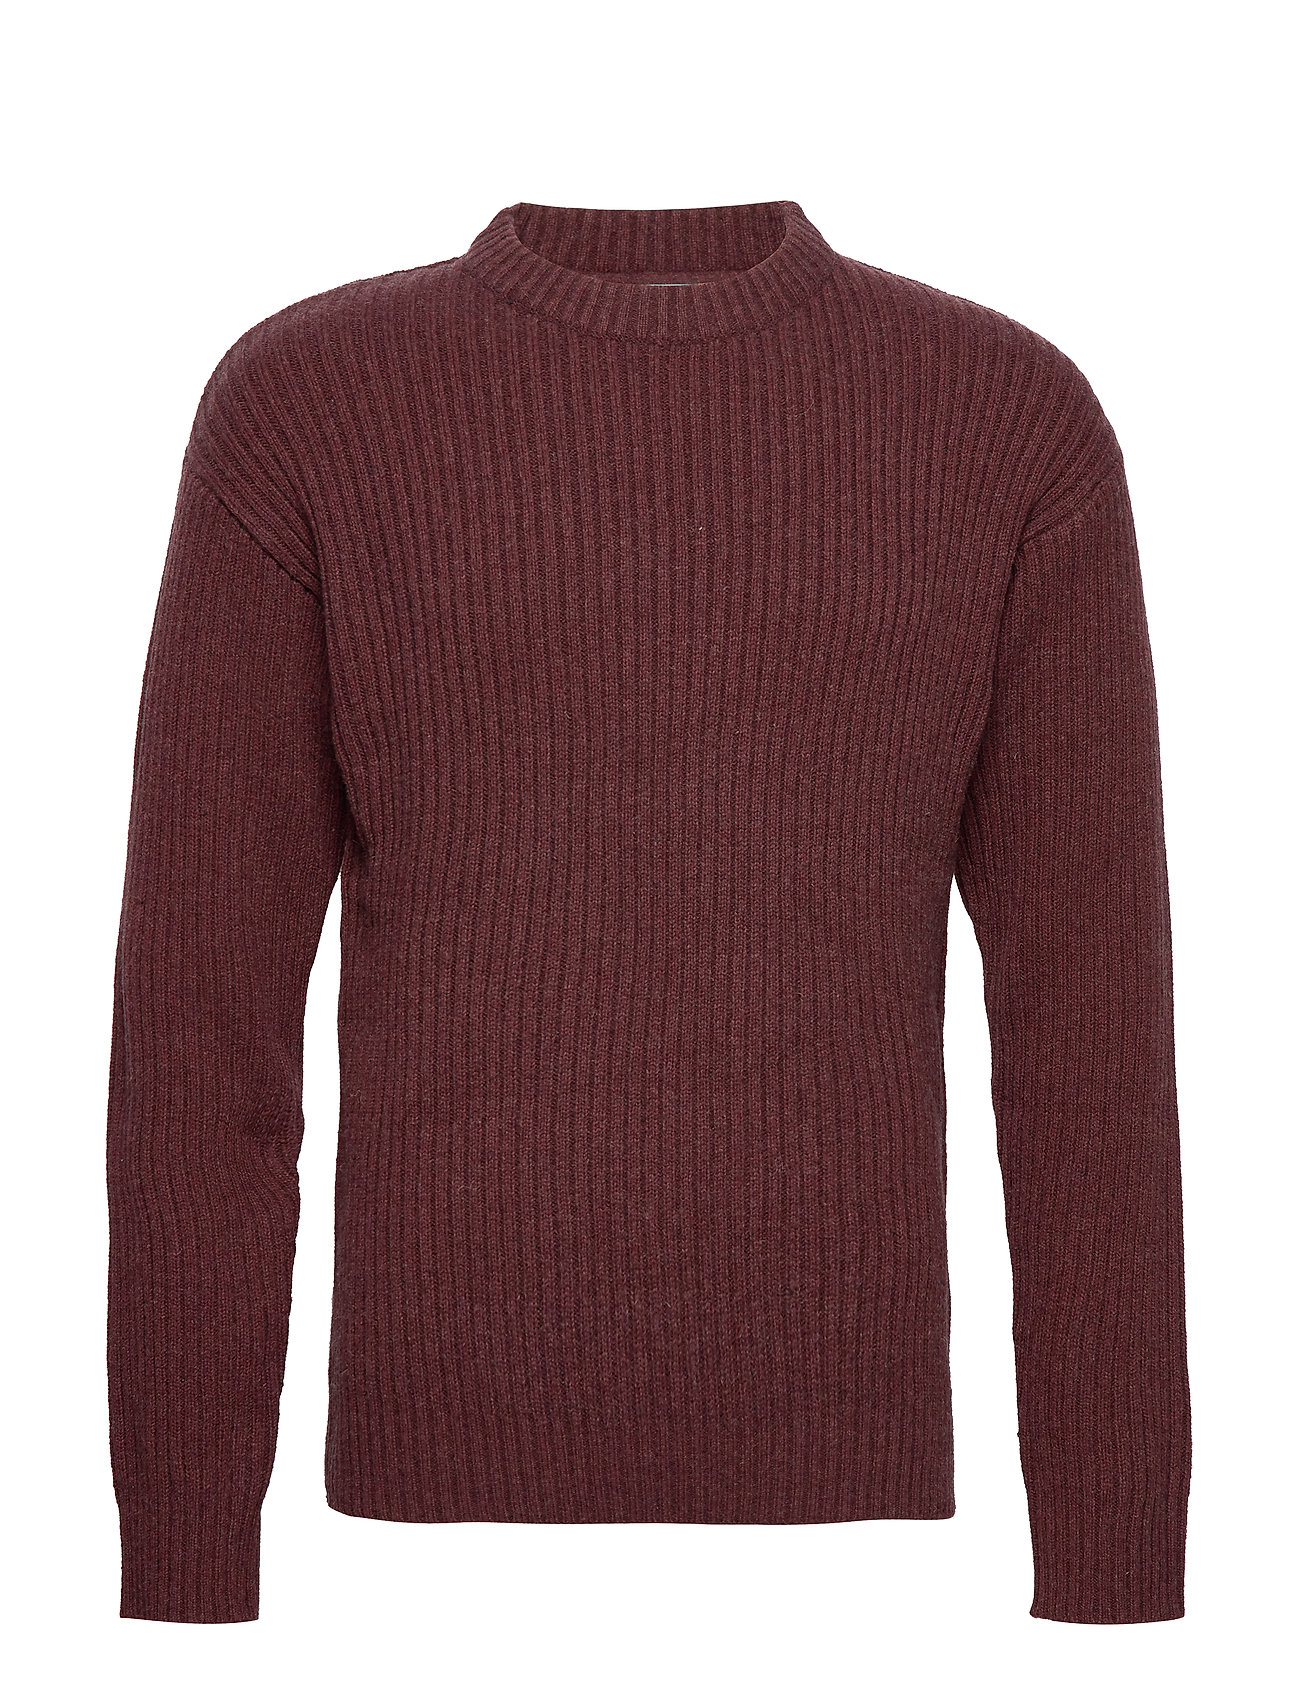 Selected Homme SLHROCK RIB CREW NECK W - ANDORRA